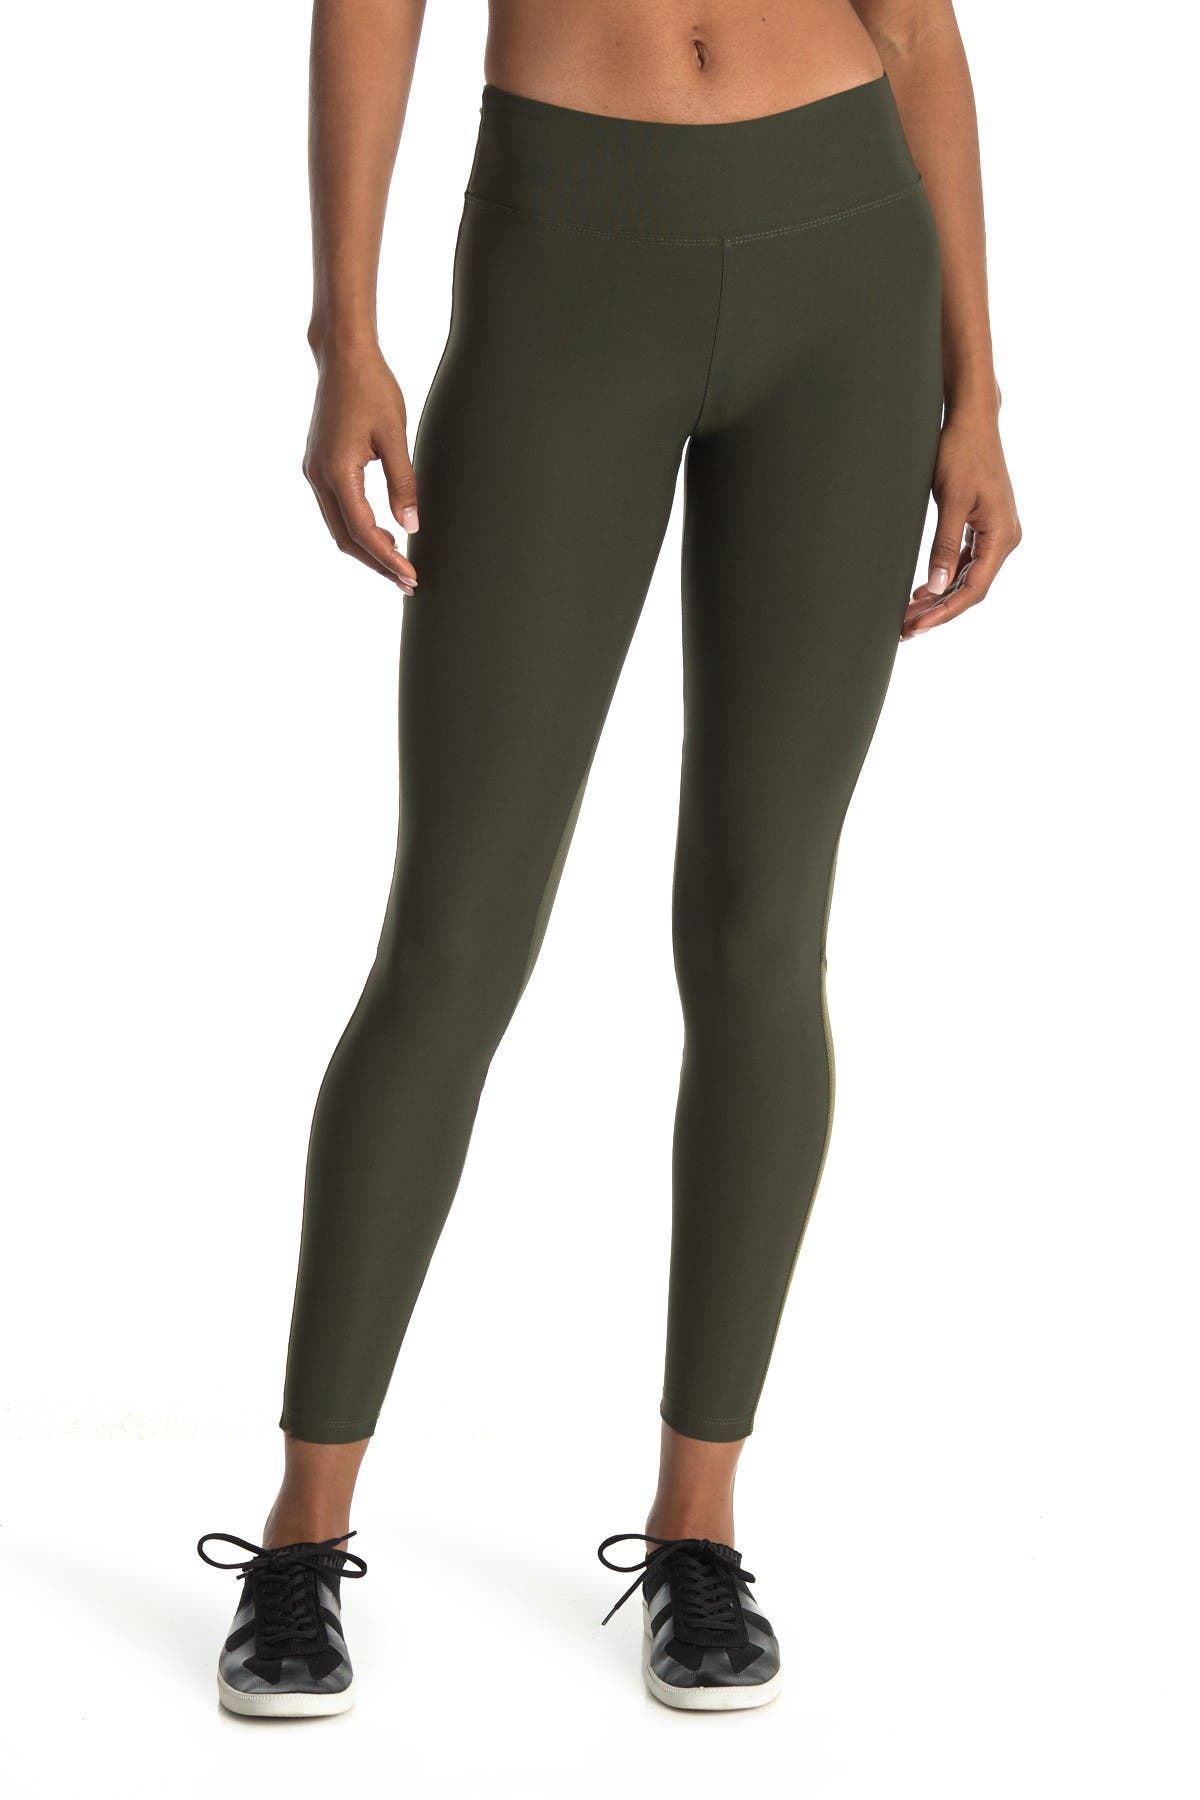 Image of The Balance Collection Quick Start Leggings